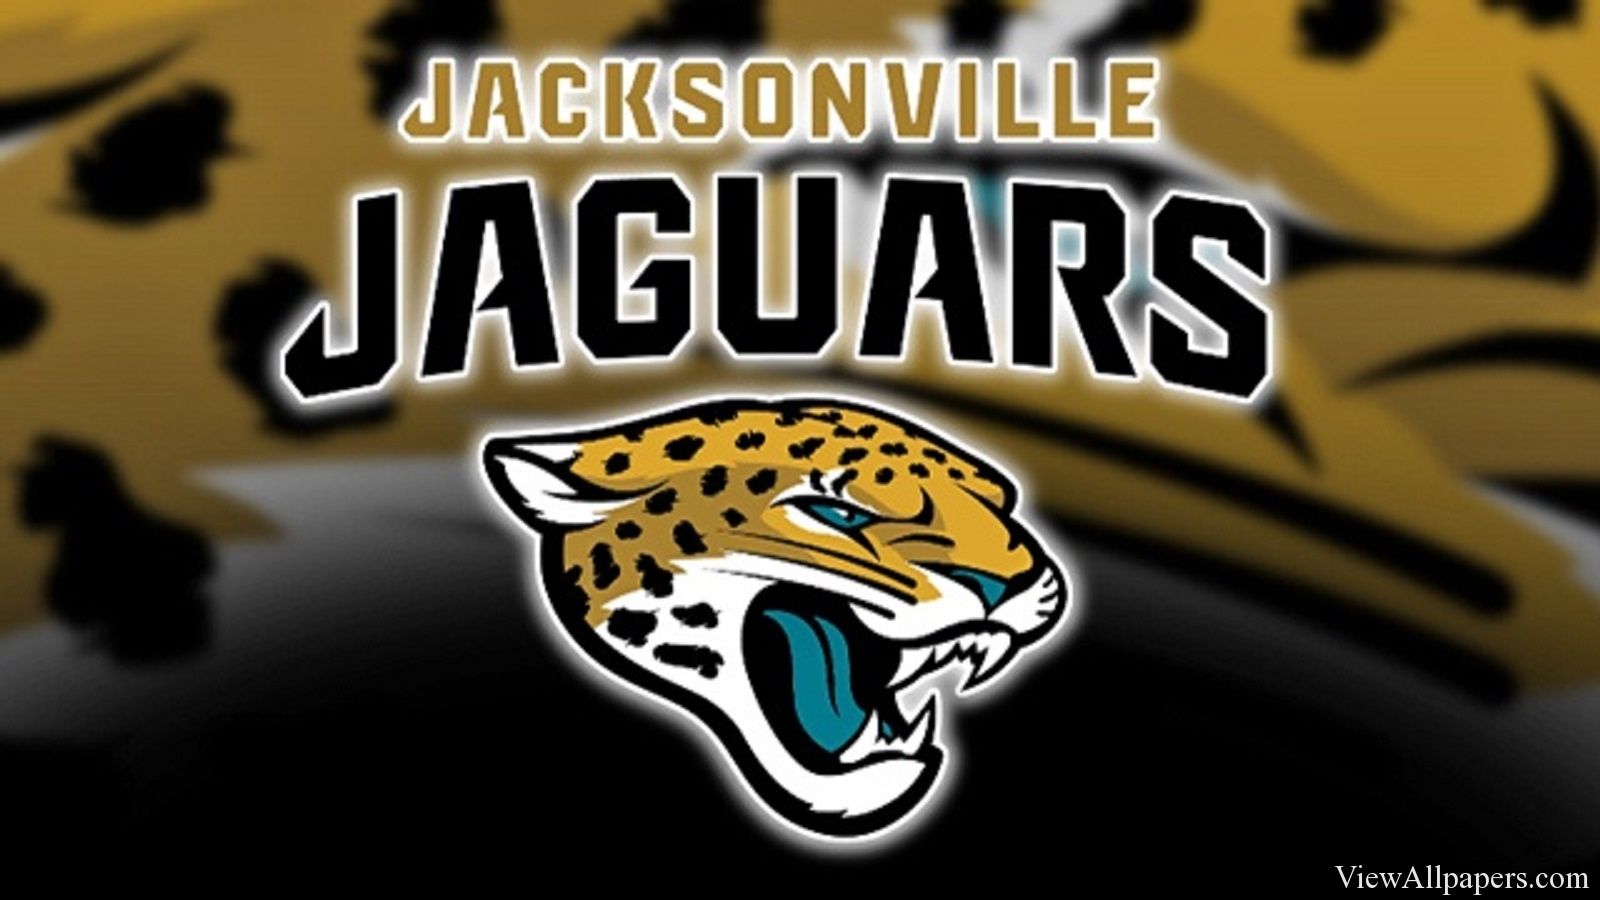 jacksonville jaguars new logo wallpapers - photo #7